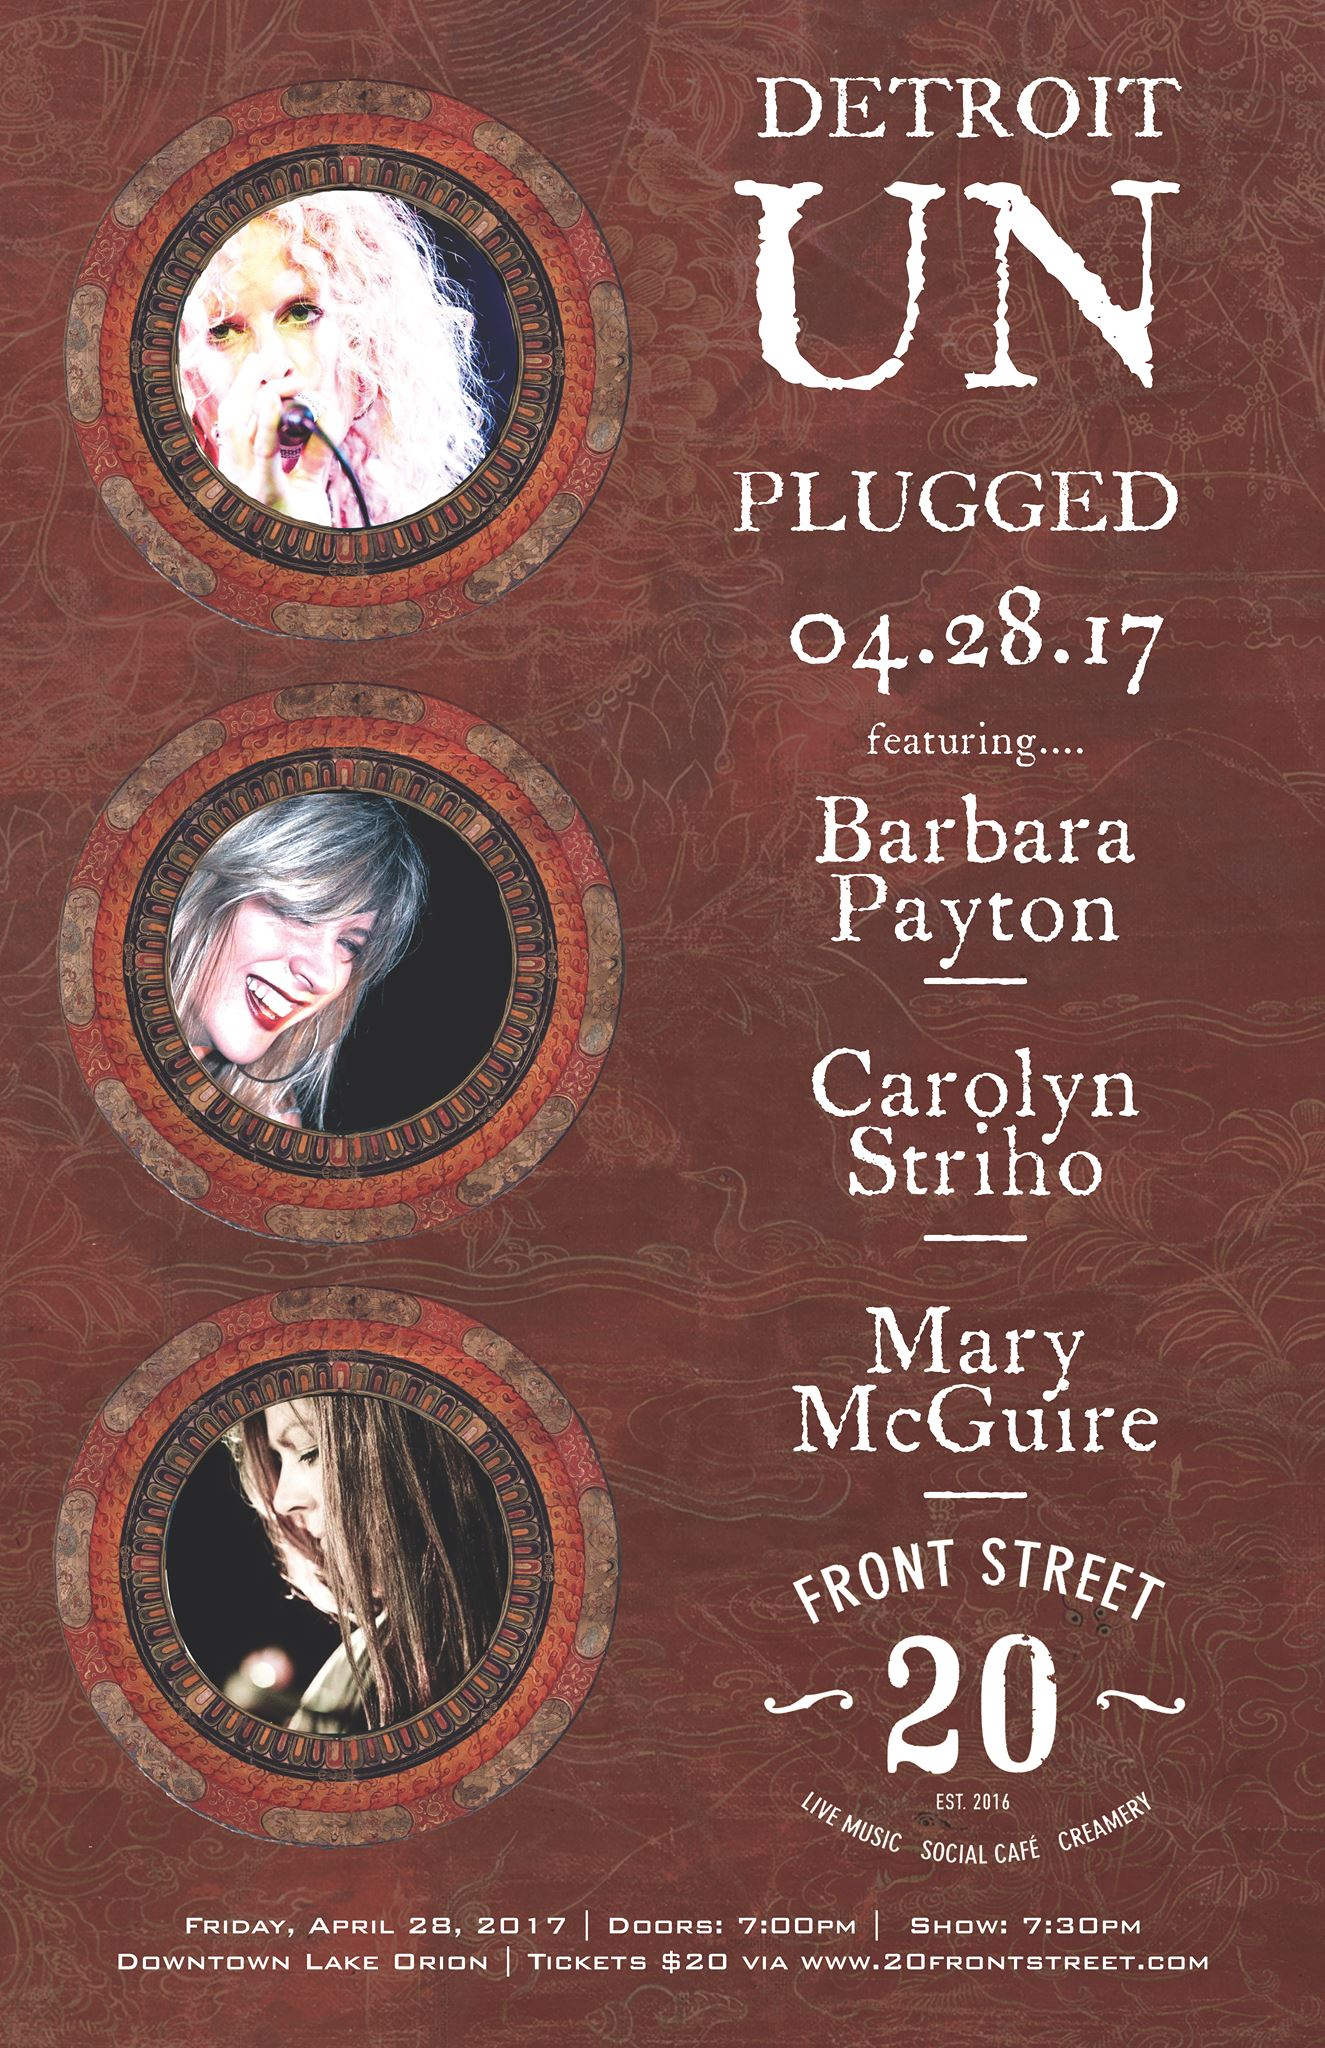 Barbara Payton, Carolyn Striho and Mary McGuire to perform at the gorgeous 20 Front Street in downtown Lake Orion.